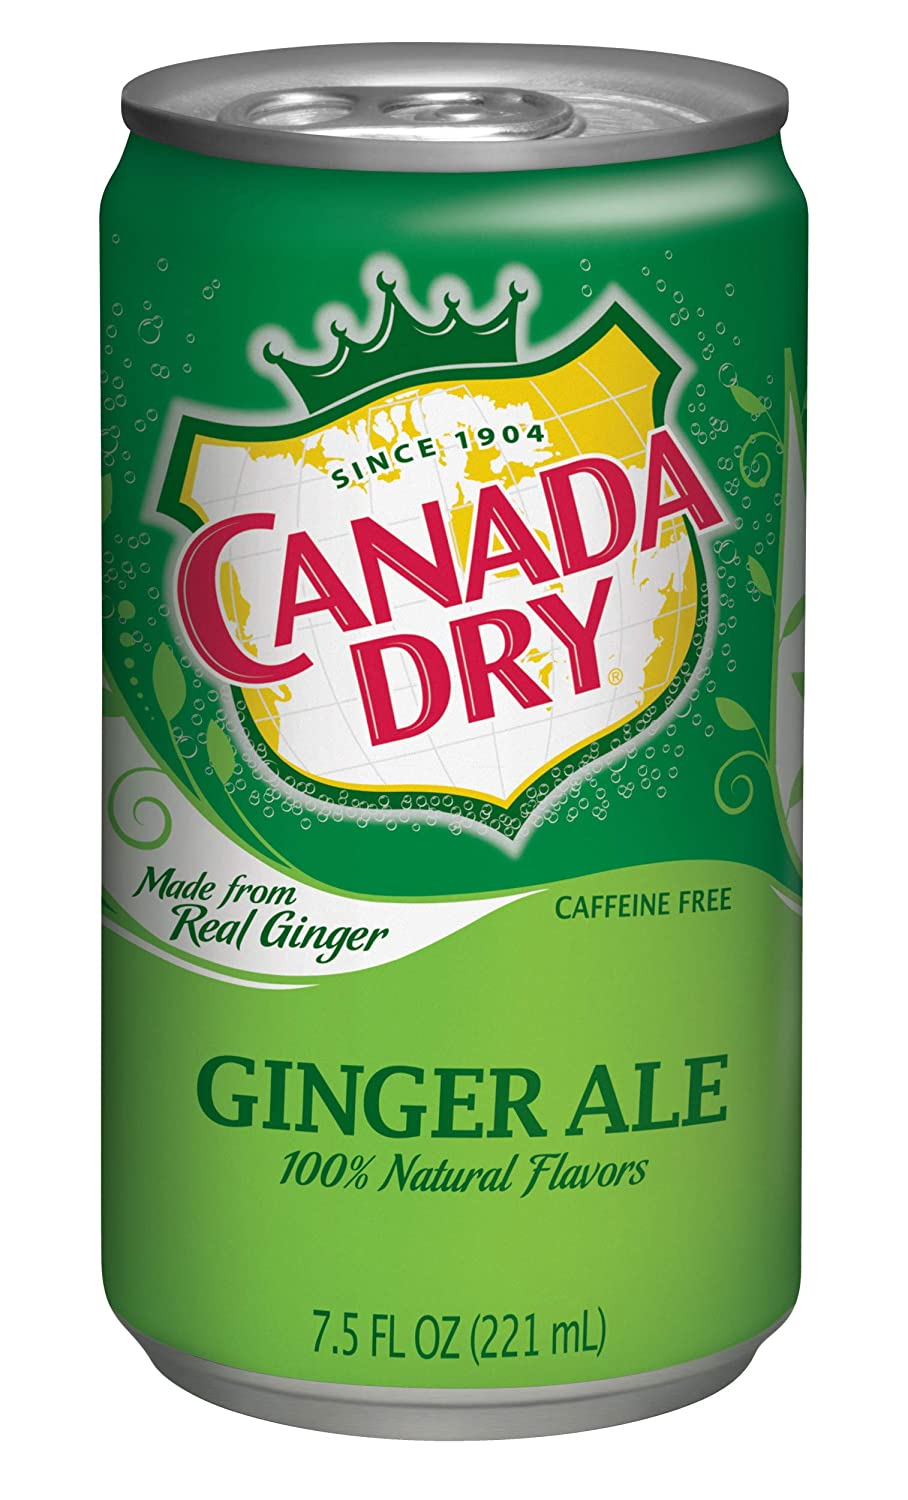 CANADA DRY GINGER ALE ON SALE